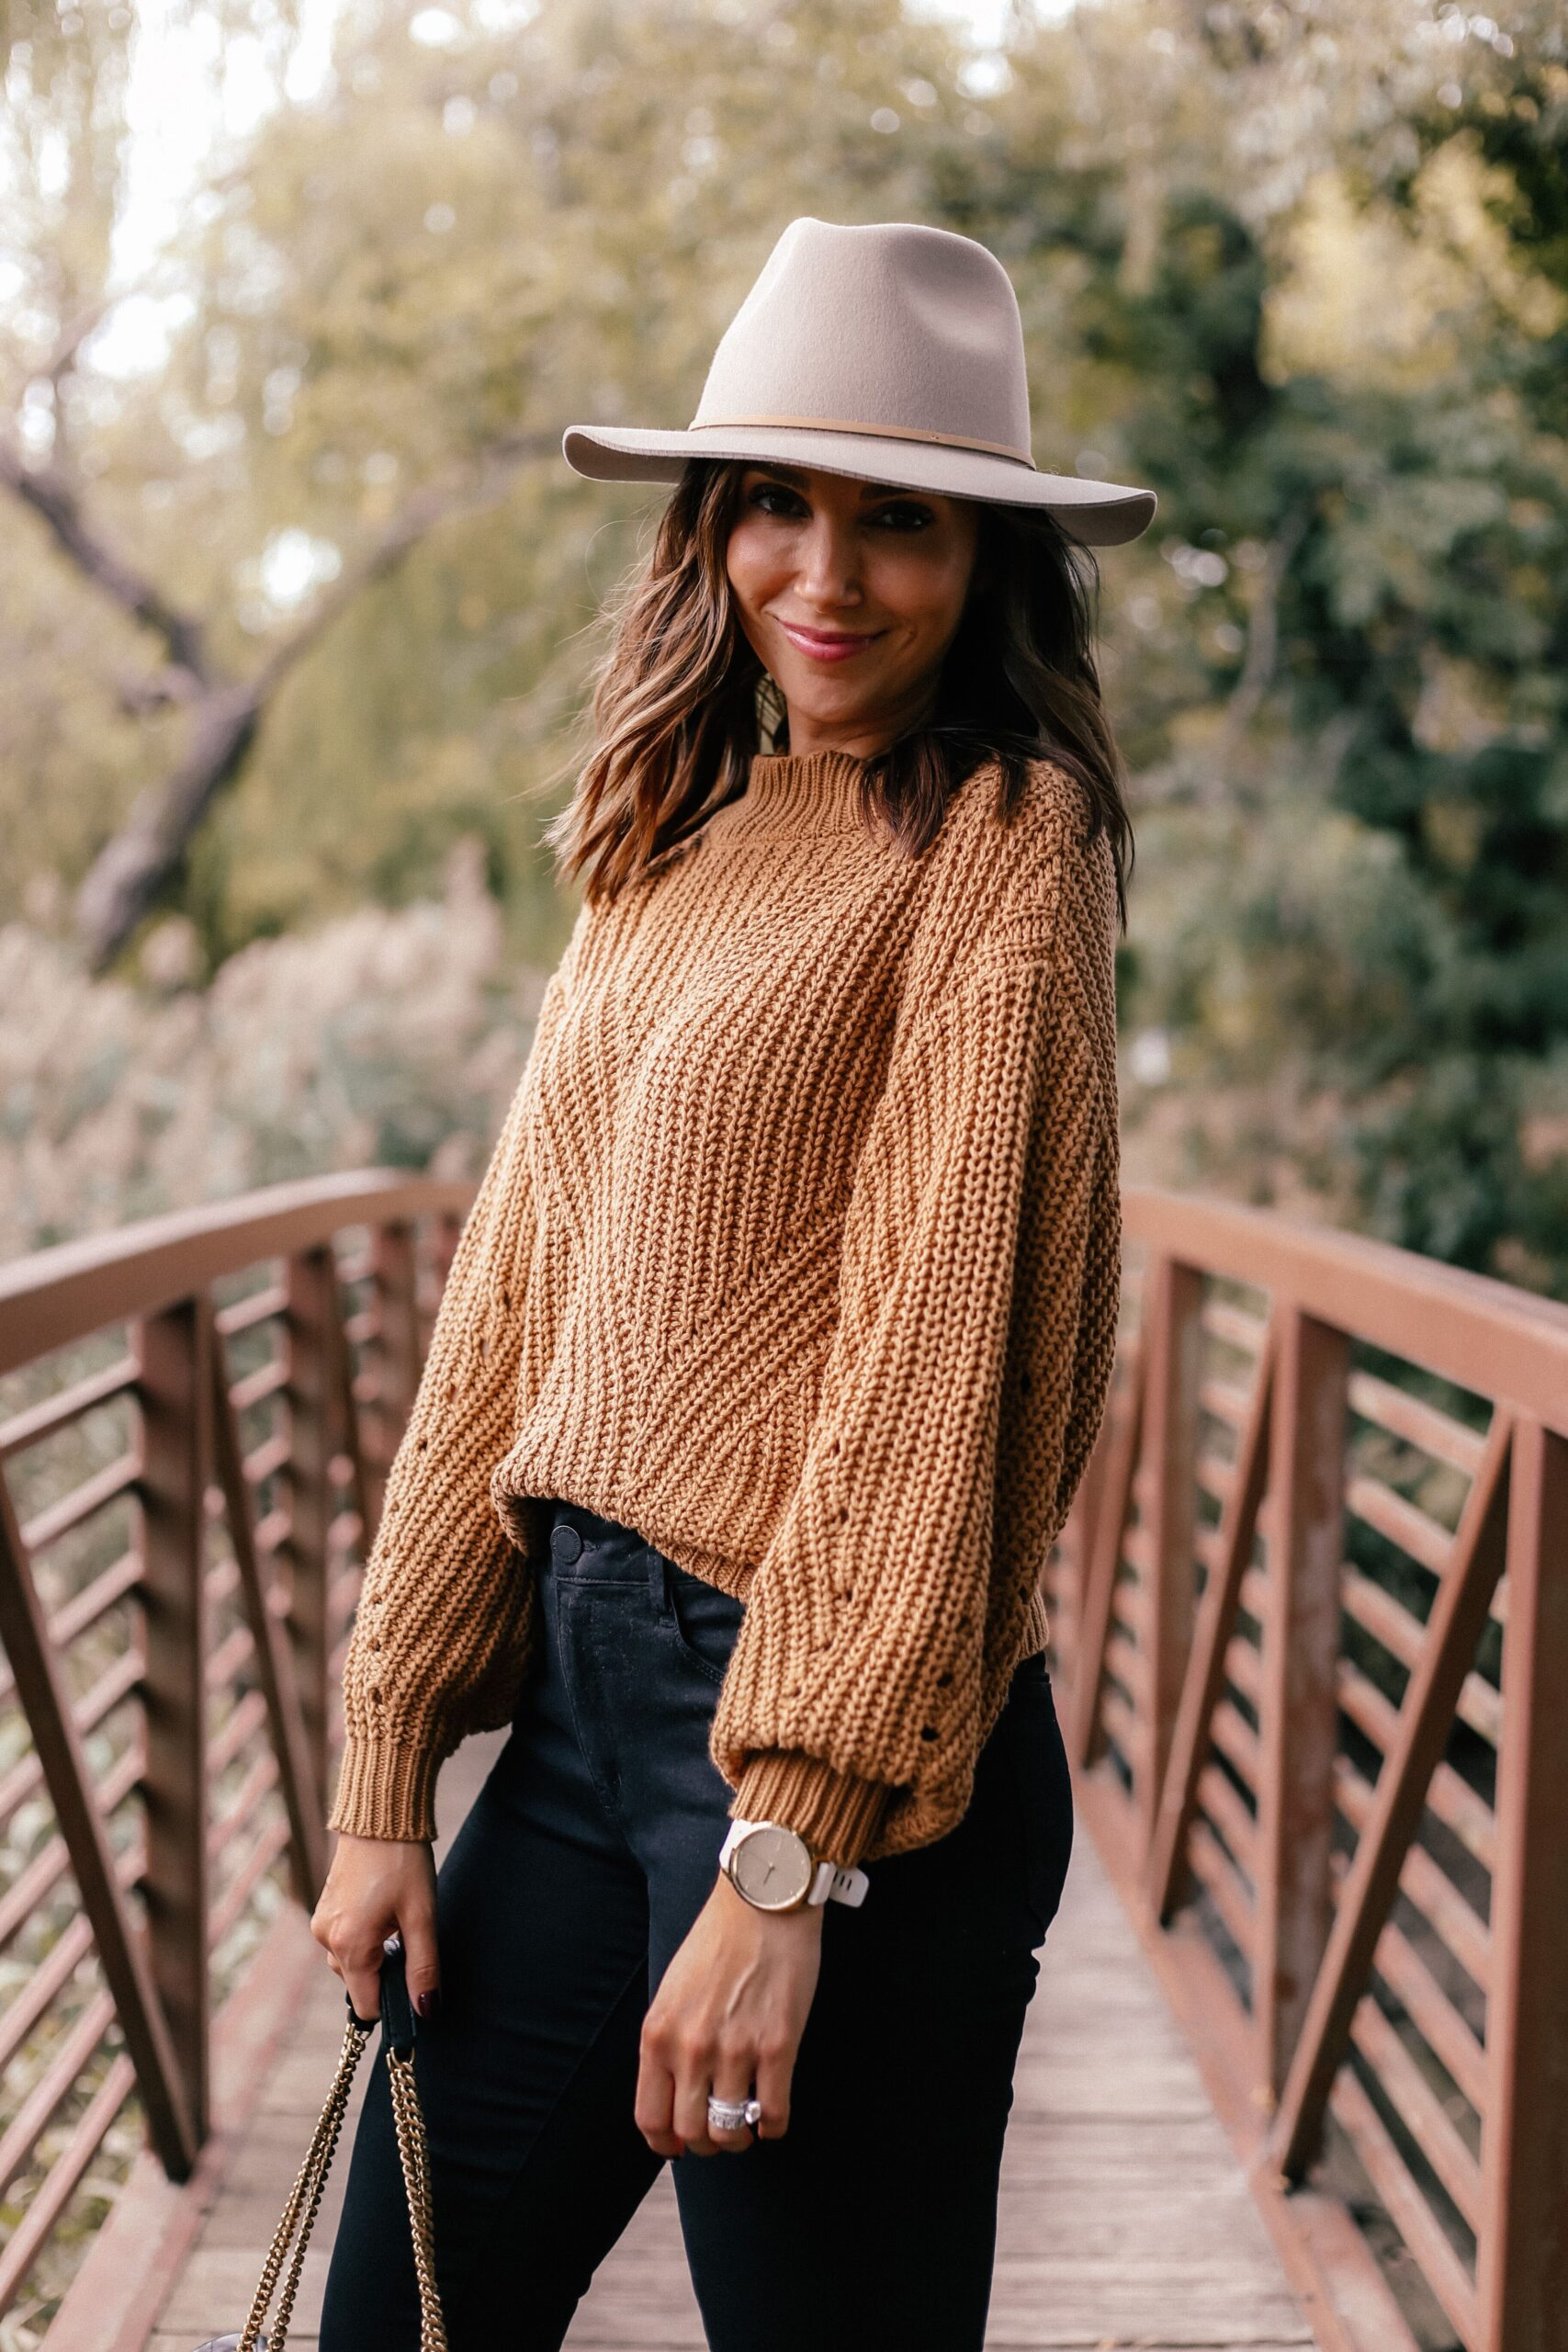 fall outfit ideas with black jeans and hat